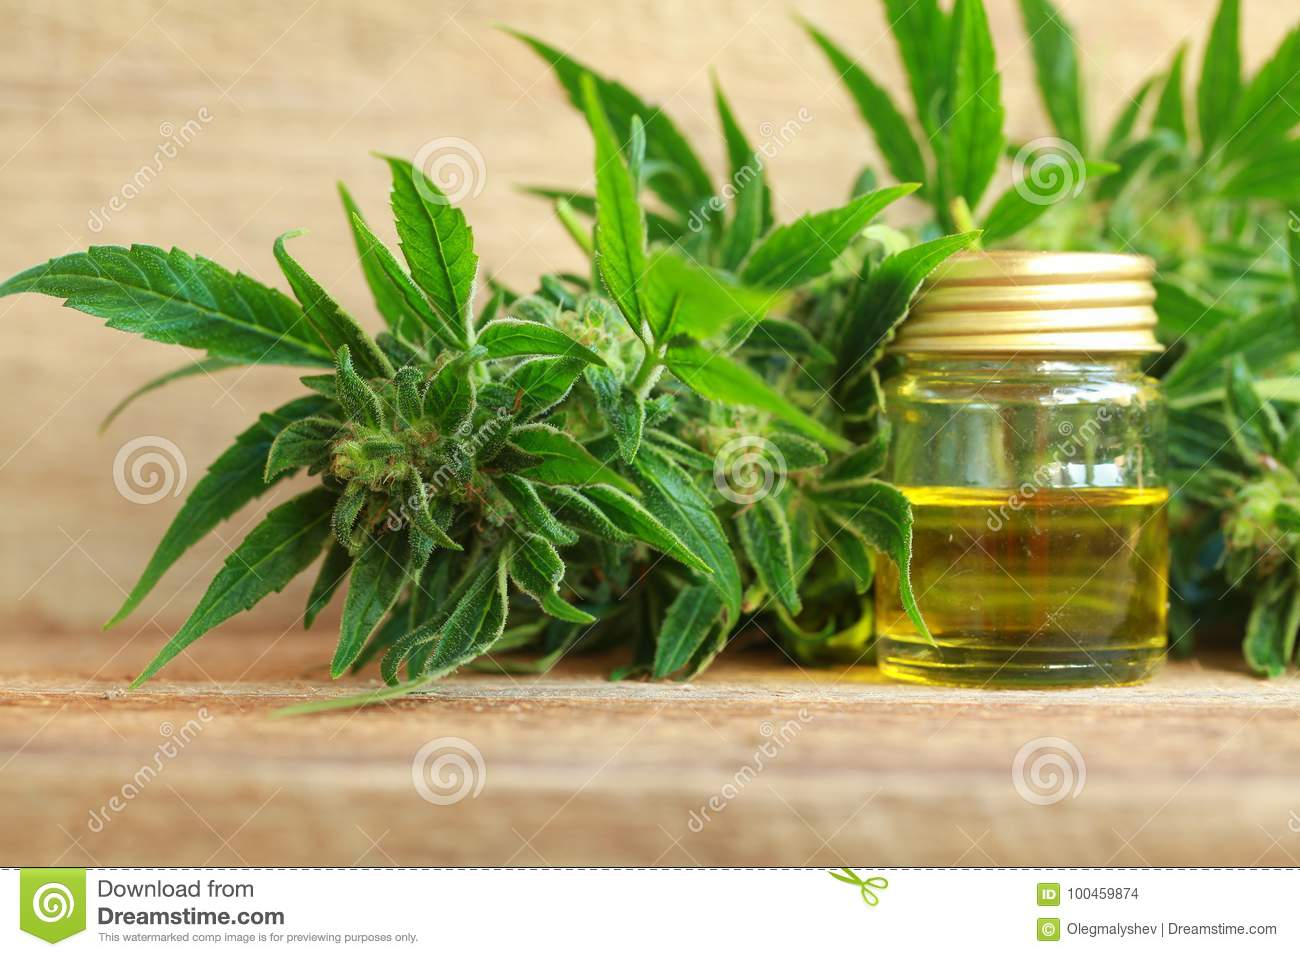 Medical Cannabis Oil Extract And Hemp Plant Stock Photo